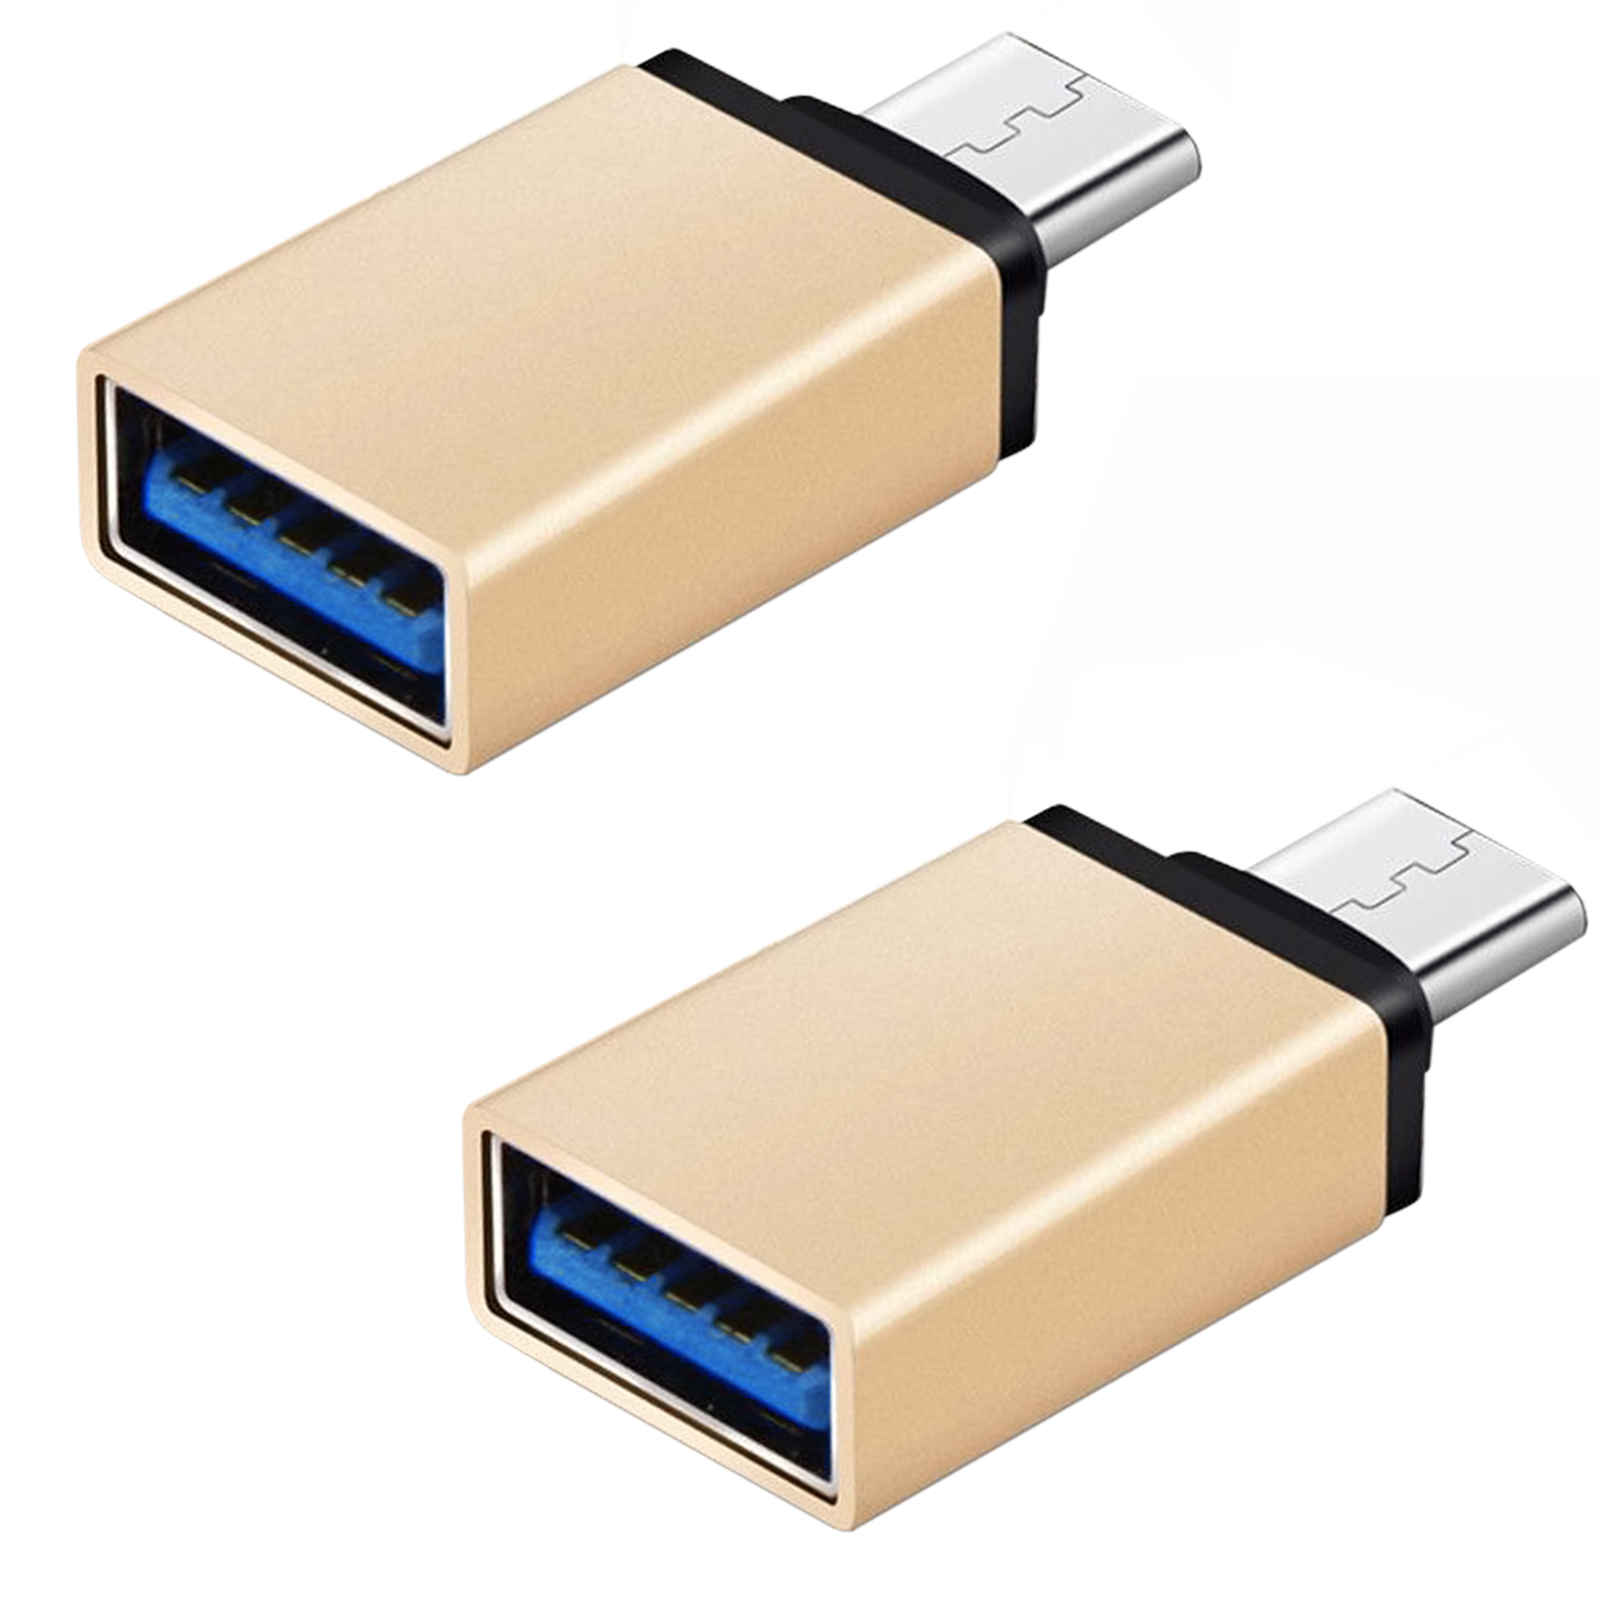 FREEDOMTECH USB C to USB 3.0 OTG Adapter (2 Pack), Thunderbolt 3 Adapter For MacBook Pro, Chromebook, Pixelbook, Microsoft Surface Go, Galaxy S8 S9 Plus Note 8 9, LG V40 G7 G6 Thinq,Google Pixel Slate